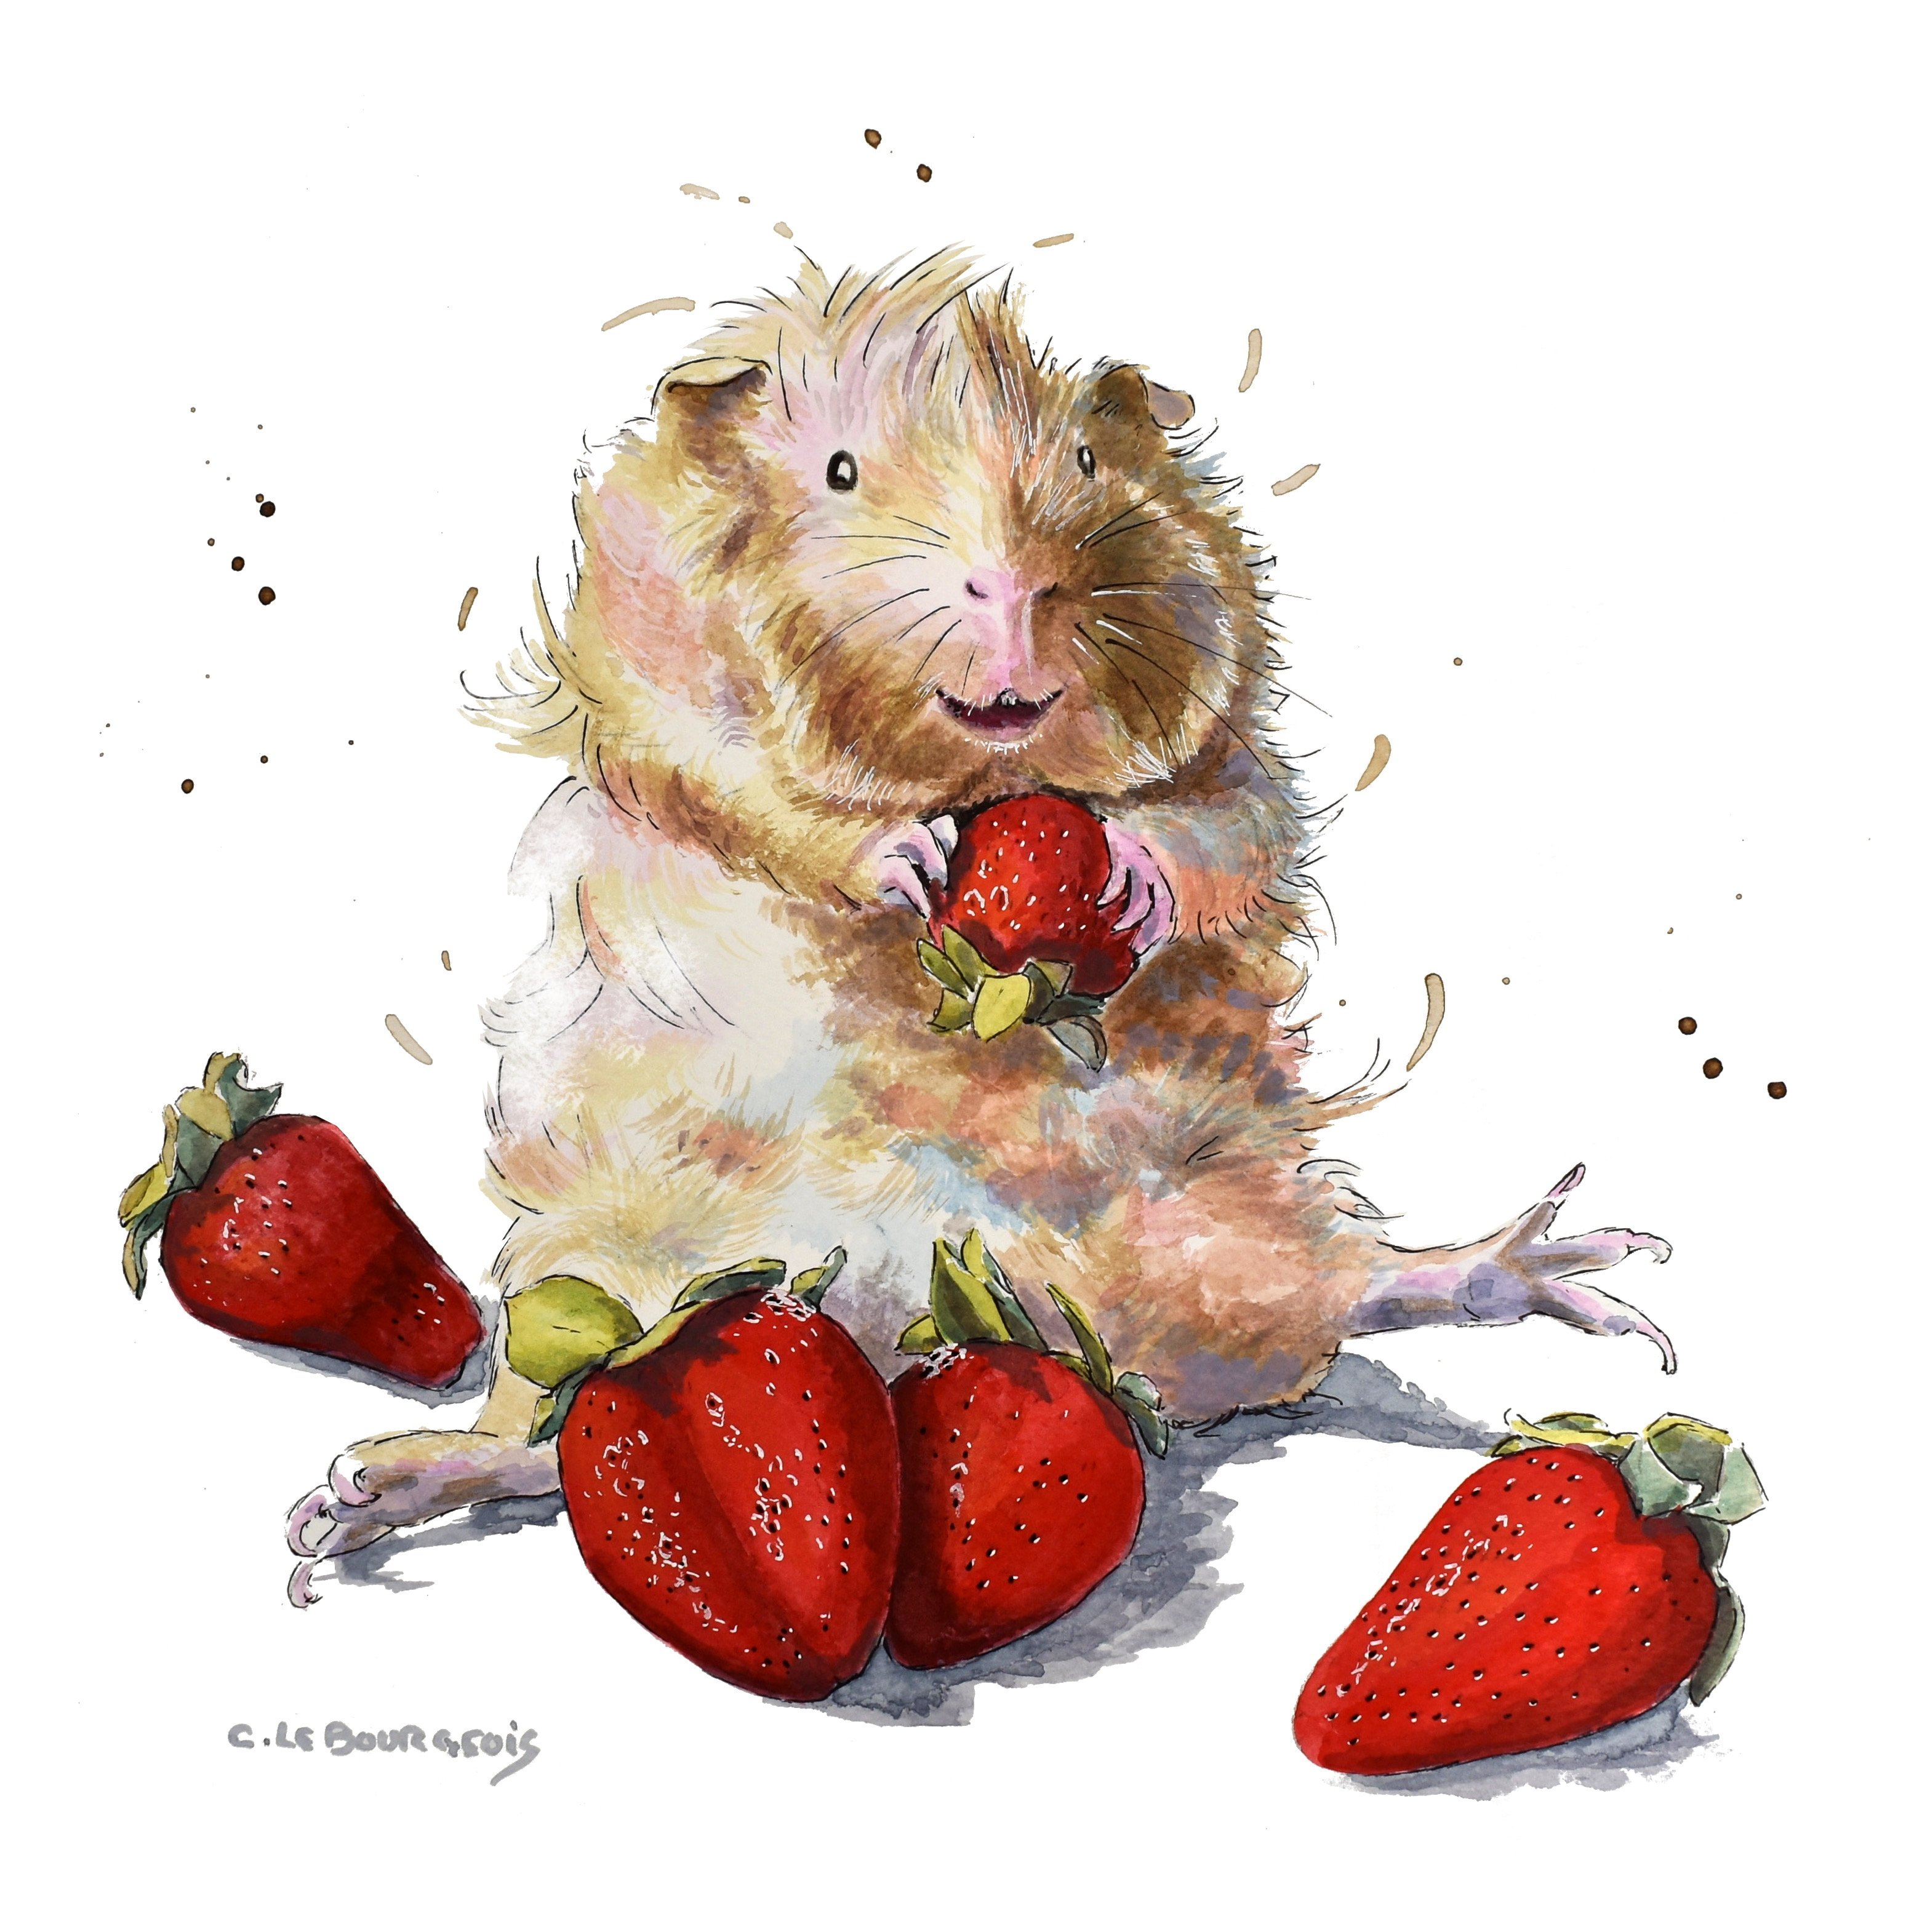 Butterscotch the Guinea pig, Painting and story!